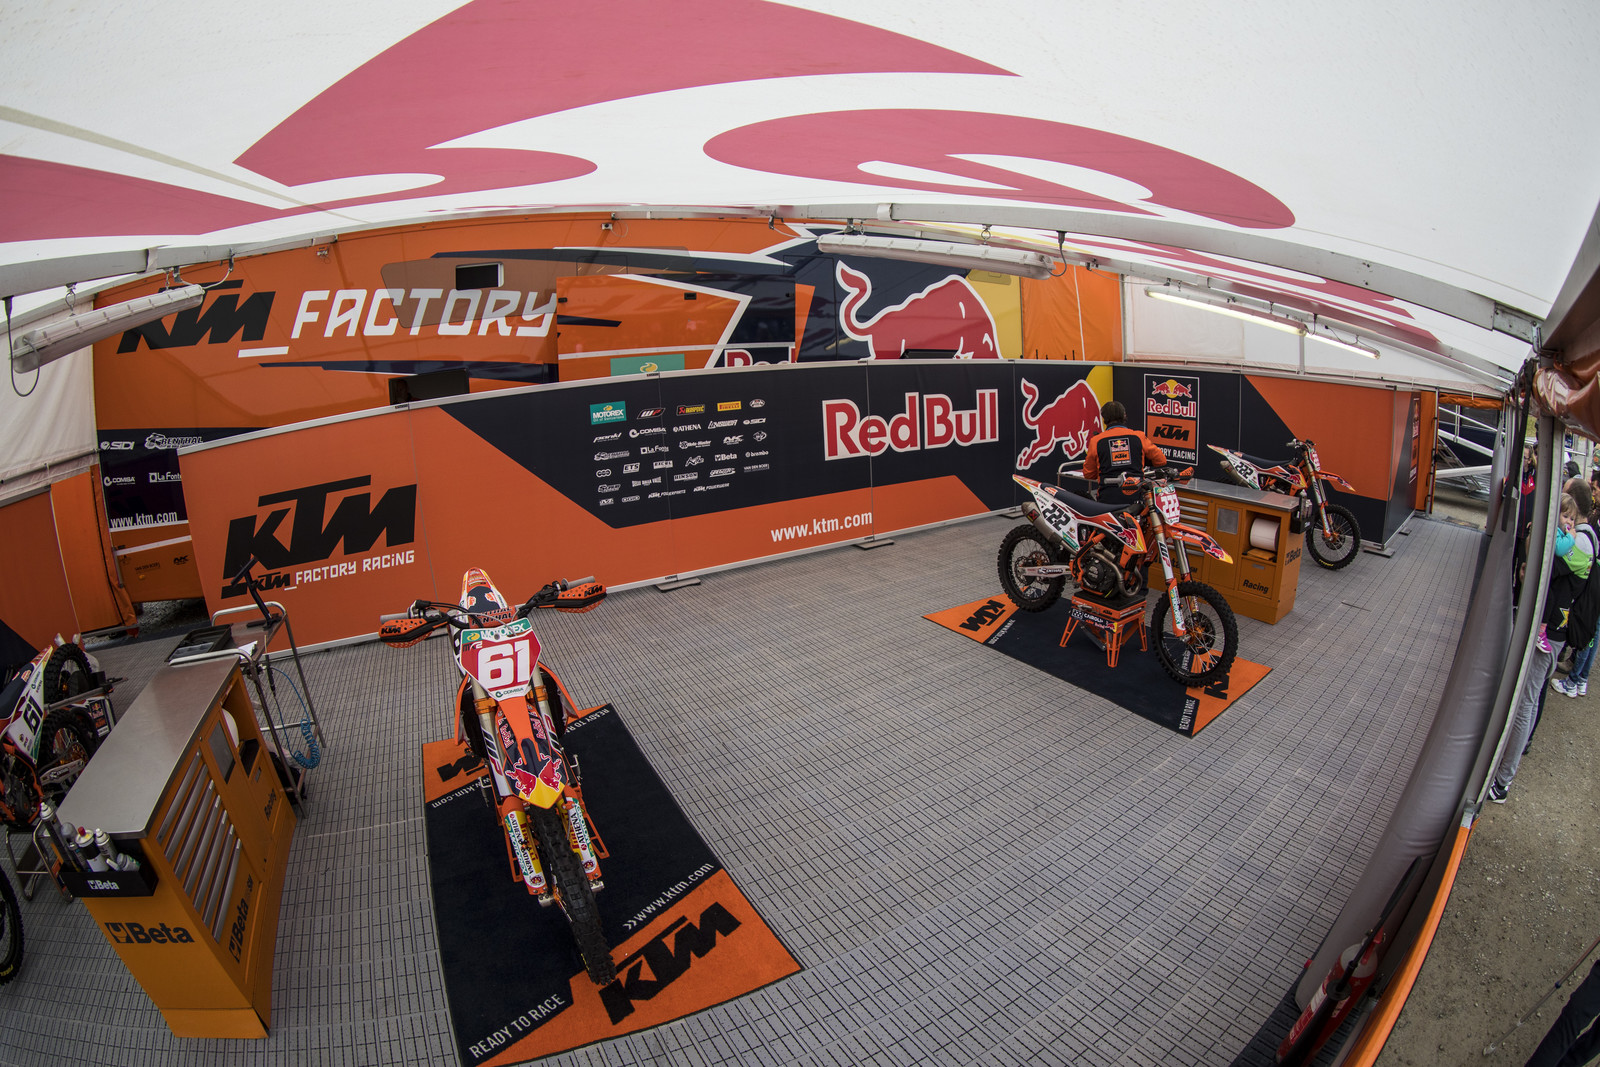 Red Bull KTM. Pretty impressive to have both red plates under the same tent. It seems that the US Red Bull Team's pits take pretty much the same style that the Euros have.